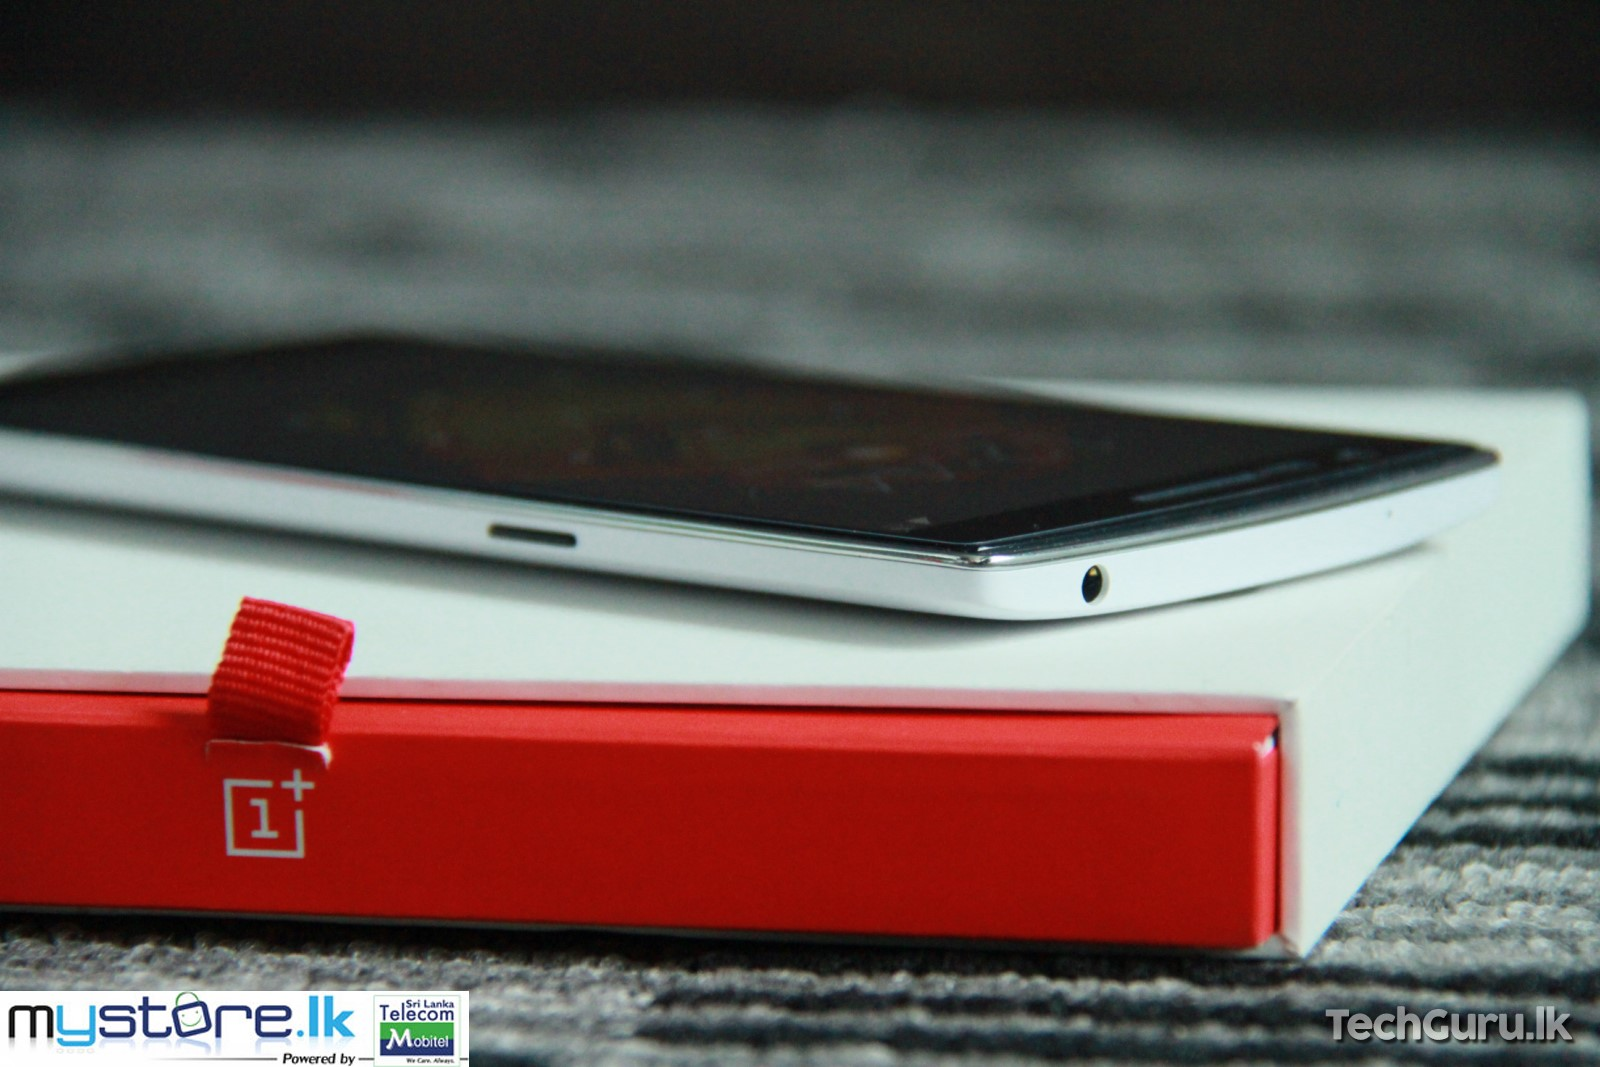 oneplus-one-review-sinhala-techguru-1